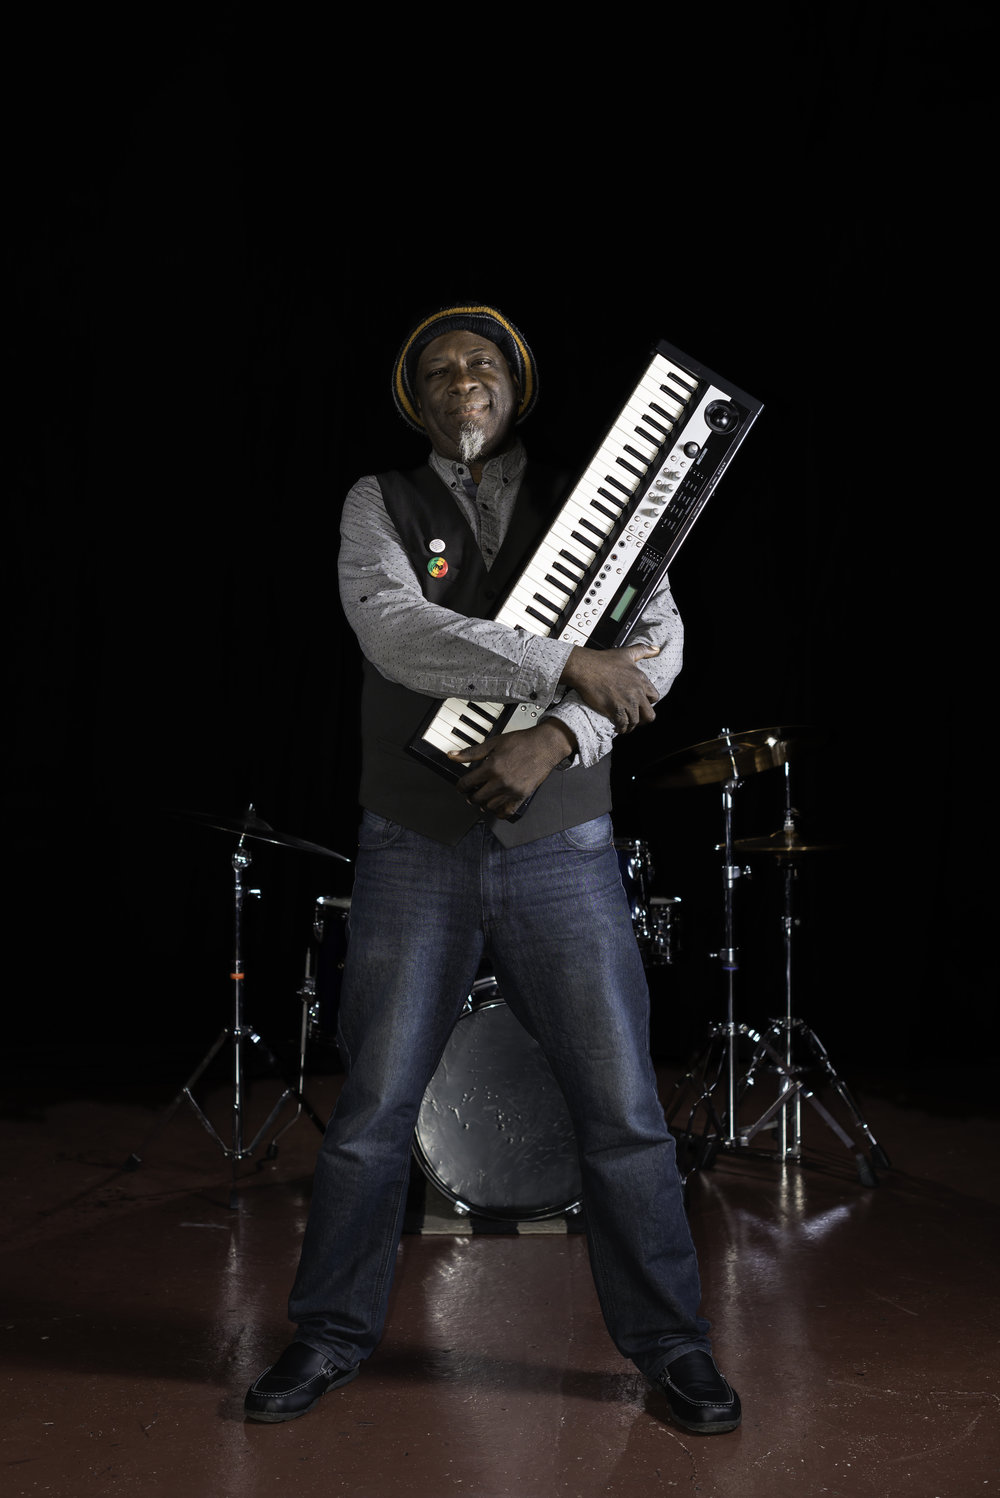 Curtis Seals - EXCERPTS FROM AN INTERVIEW IN MAY 2016 ISSUE OF COOL M'FCKAON MUSICAL INFLUENCES:i've always loved music and the arts.when i was a kid, i'd ask my dad about what instruments were playing, and he would point out the guitar and drums, stuff like that... in my grandfather's church, my uncle warren played organ and piano... his right arm was withered, so he played with just his left hand and held it down... really dug what he was able to do... loved the big church musicals, with all the pomp and hype happening... my ears were always attuned like that... i loved tv theme songs. a lot of the westerns had some cool music happening... the old wyatt earp show had a male quartet singing and humming, which i thought was kinda cool... everything was fair game... the radio played everything from james brown to sonny and cher... the music was constantly changing... i grew up in the 60s and 70s so the music and culture were expanding... i was hearing the gospel my mom would play on sunday mornings when we were getting ready for church, the bluesy soul stuff that my dad liked, bobby blue bland, joe tex, wilson pickett... my teenage years were kool and the gang and earth, wind, and fire... hendrix blew everybody's mind, i loved the rock at the time... bands like the james gang, mountain, cream... real funky... of course, parliament-funkadelic was it for me... then jazz-rock came in...